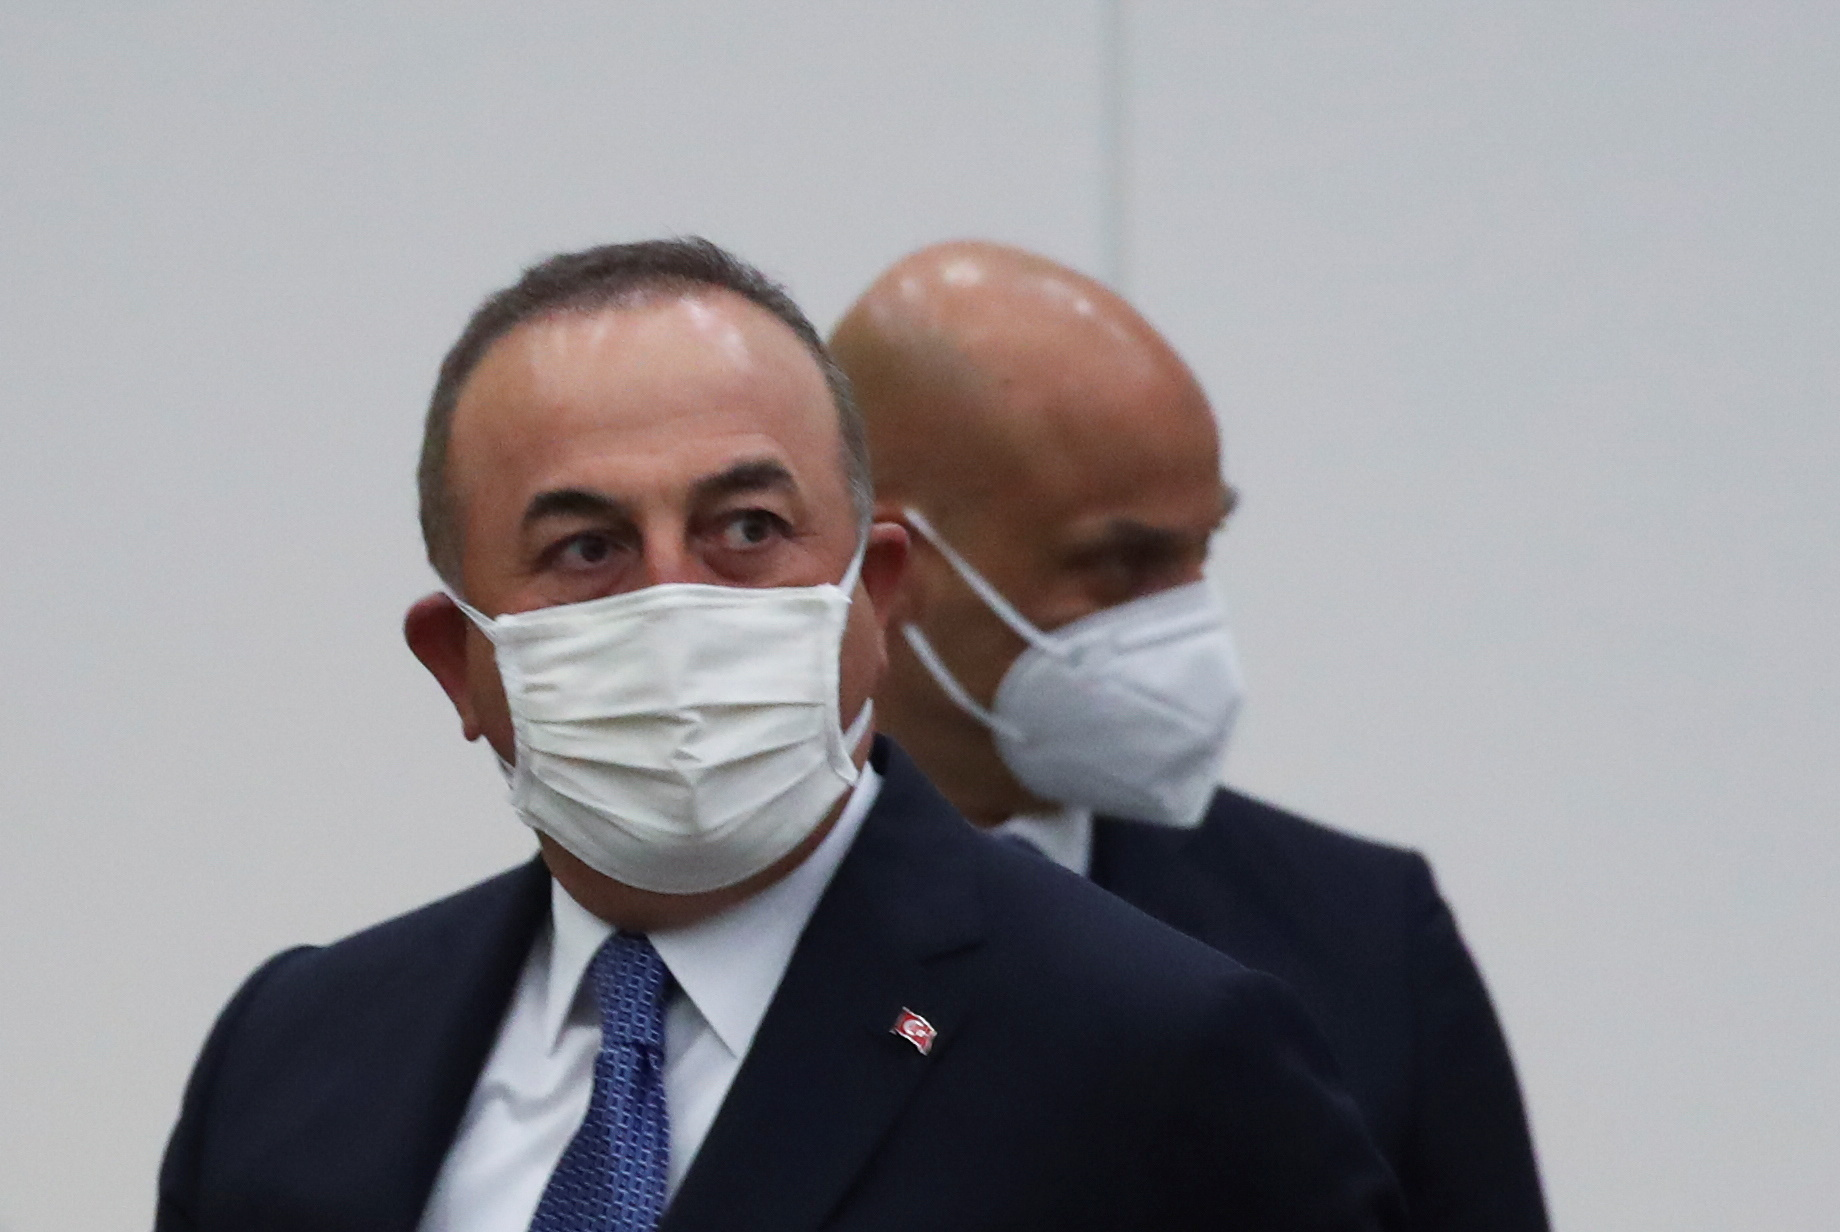 Turkish Foreign Minister Mevlut Cavusoglu attends a North Atlantic Council (NAC) at foreign ministers level, at NATO headquarters in Brussels, Belgium March 23, 2021. REUTERS/Yves Herman/Pool